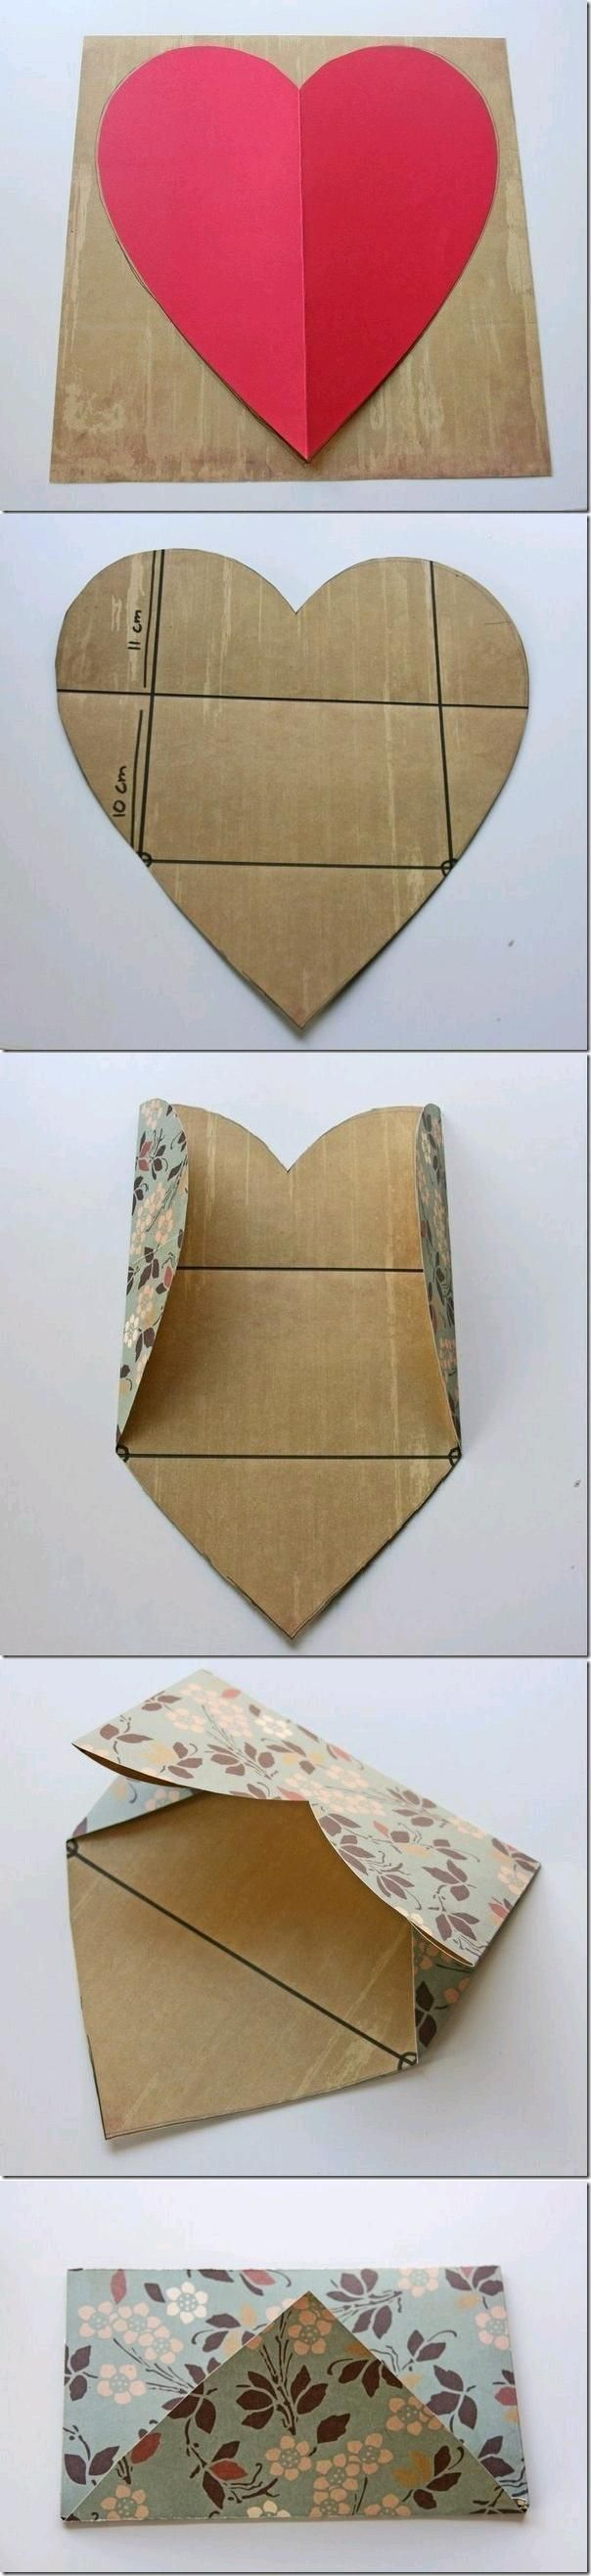 DIY Envelope - its a heart!